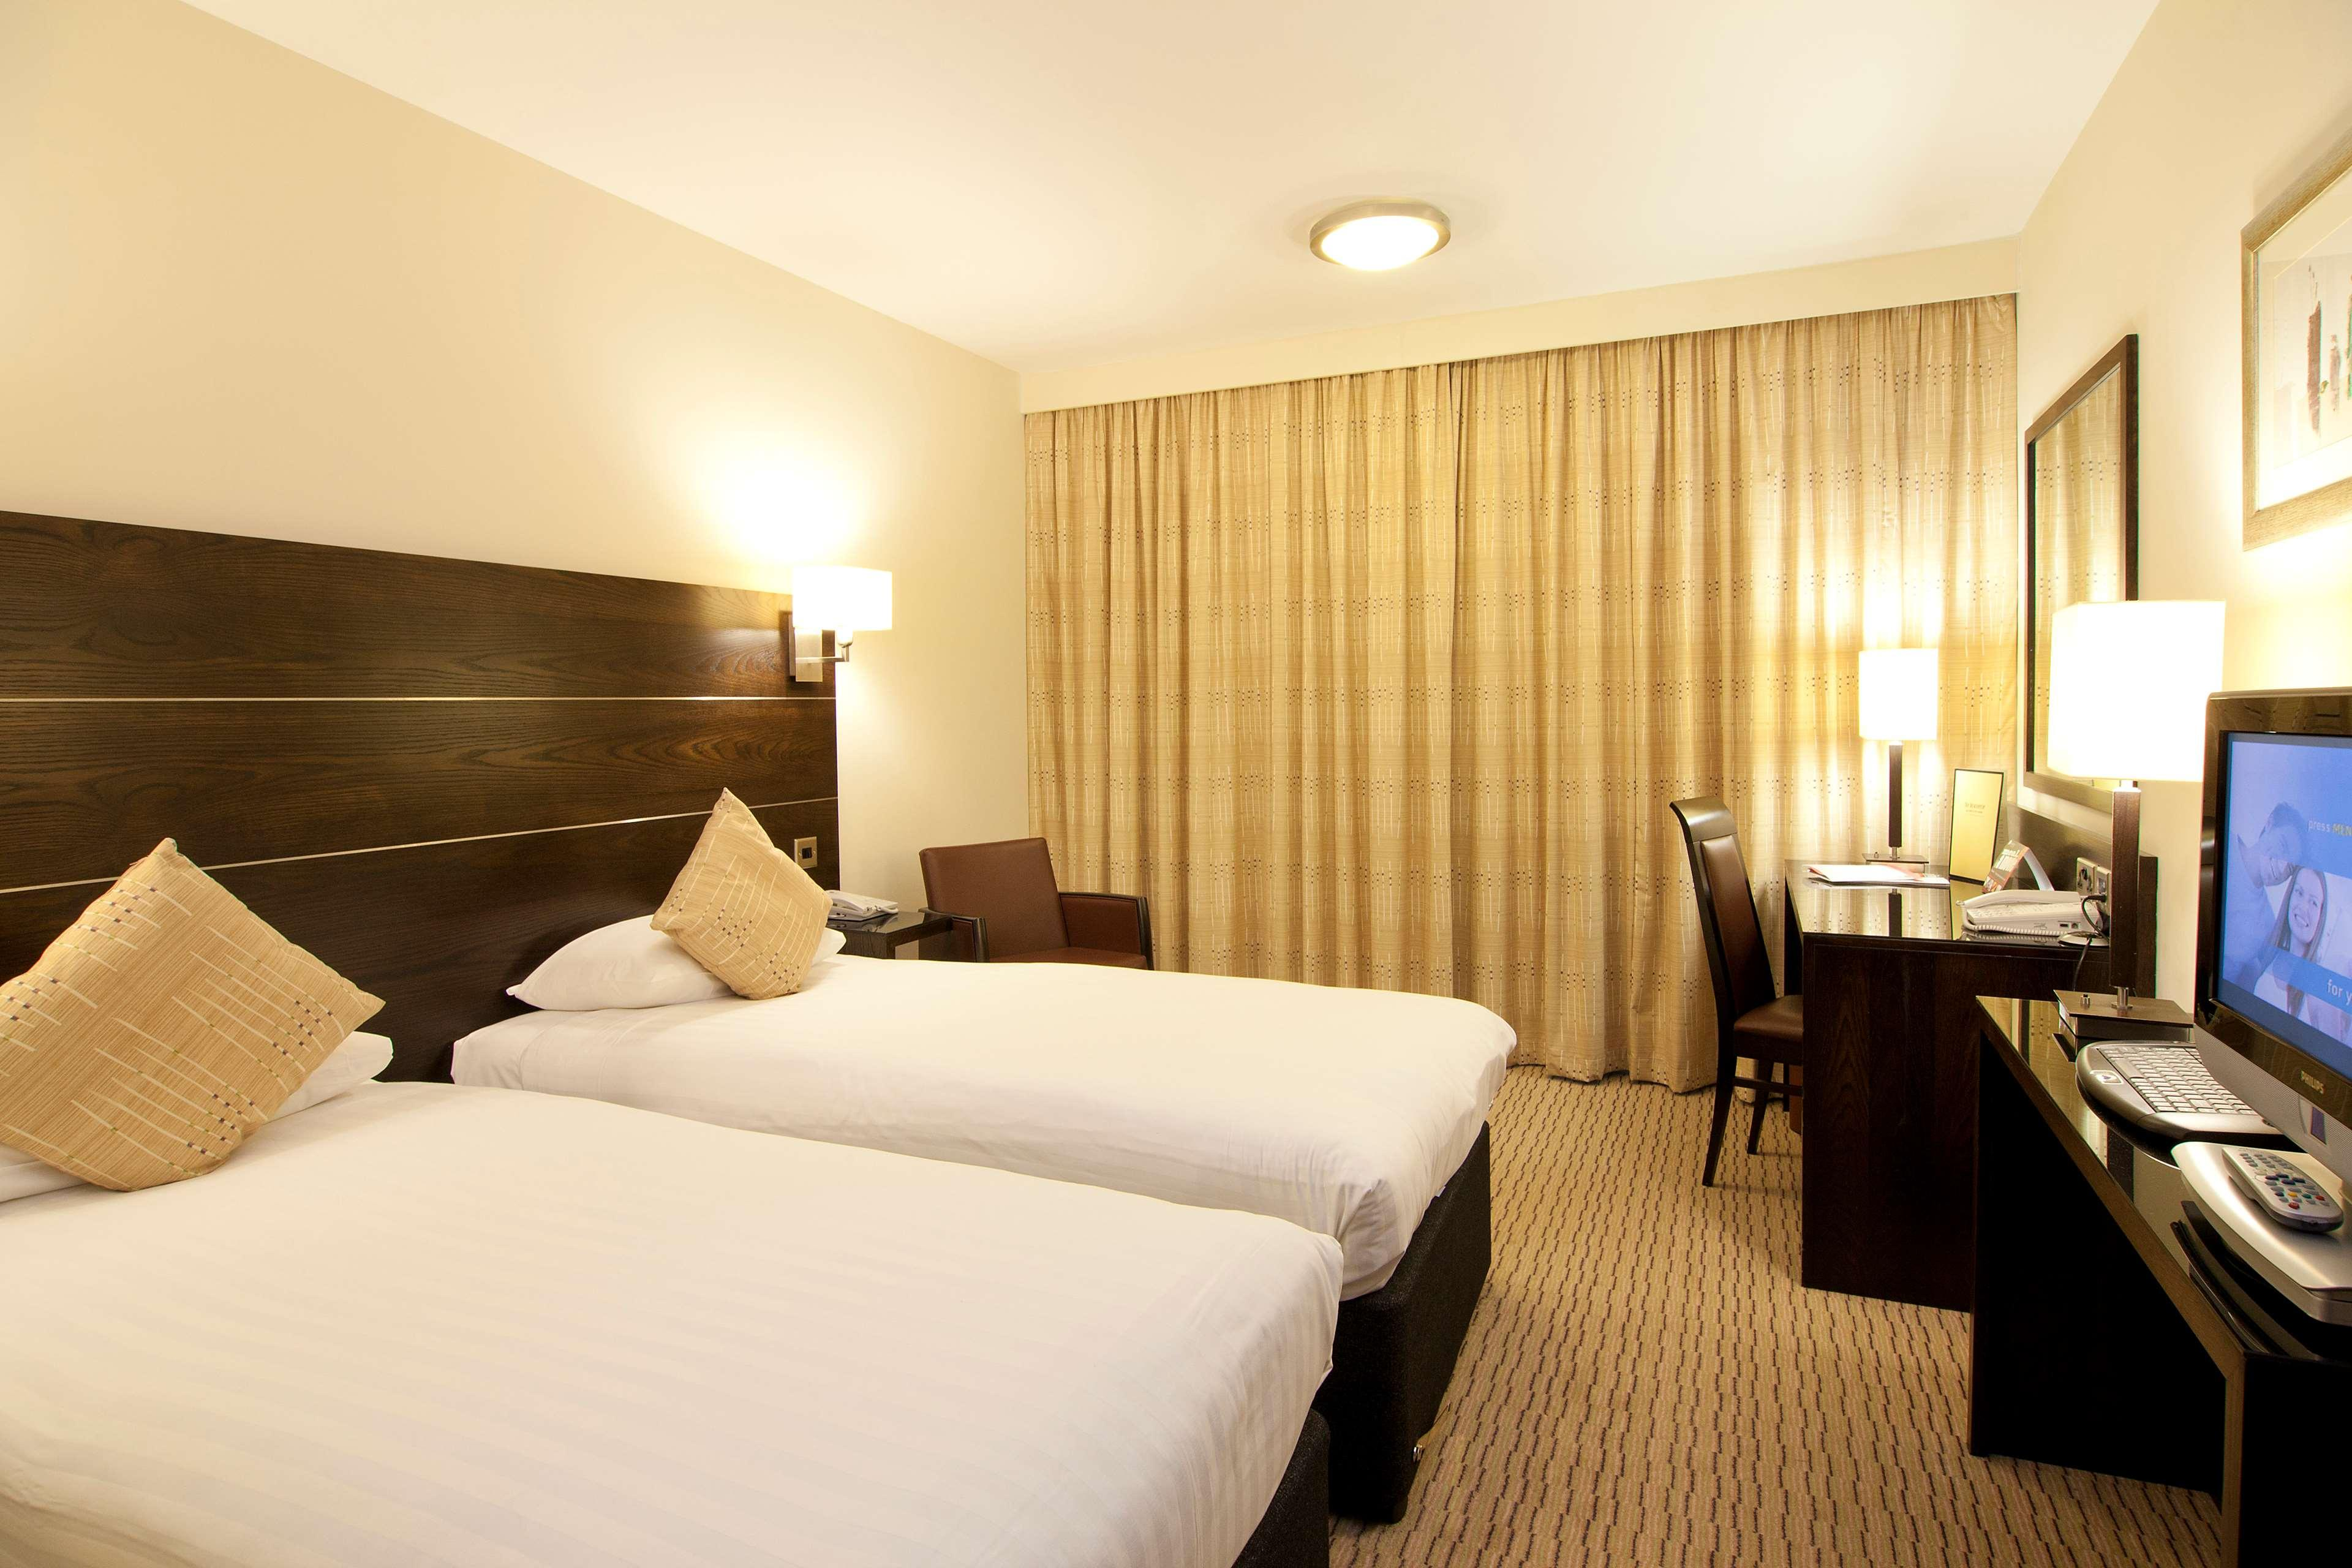 DoubleTree by Hilton London Heathrow Airport, London